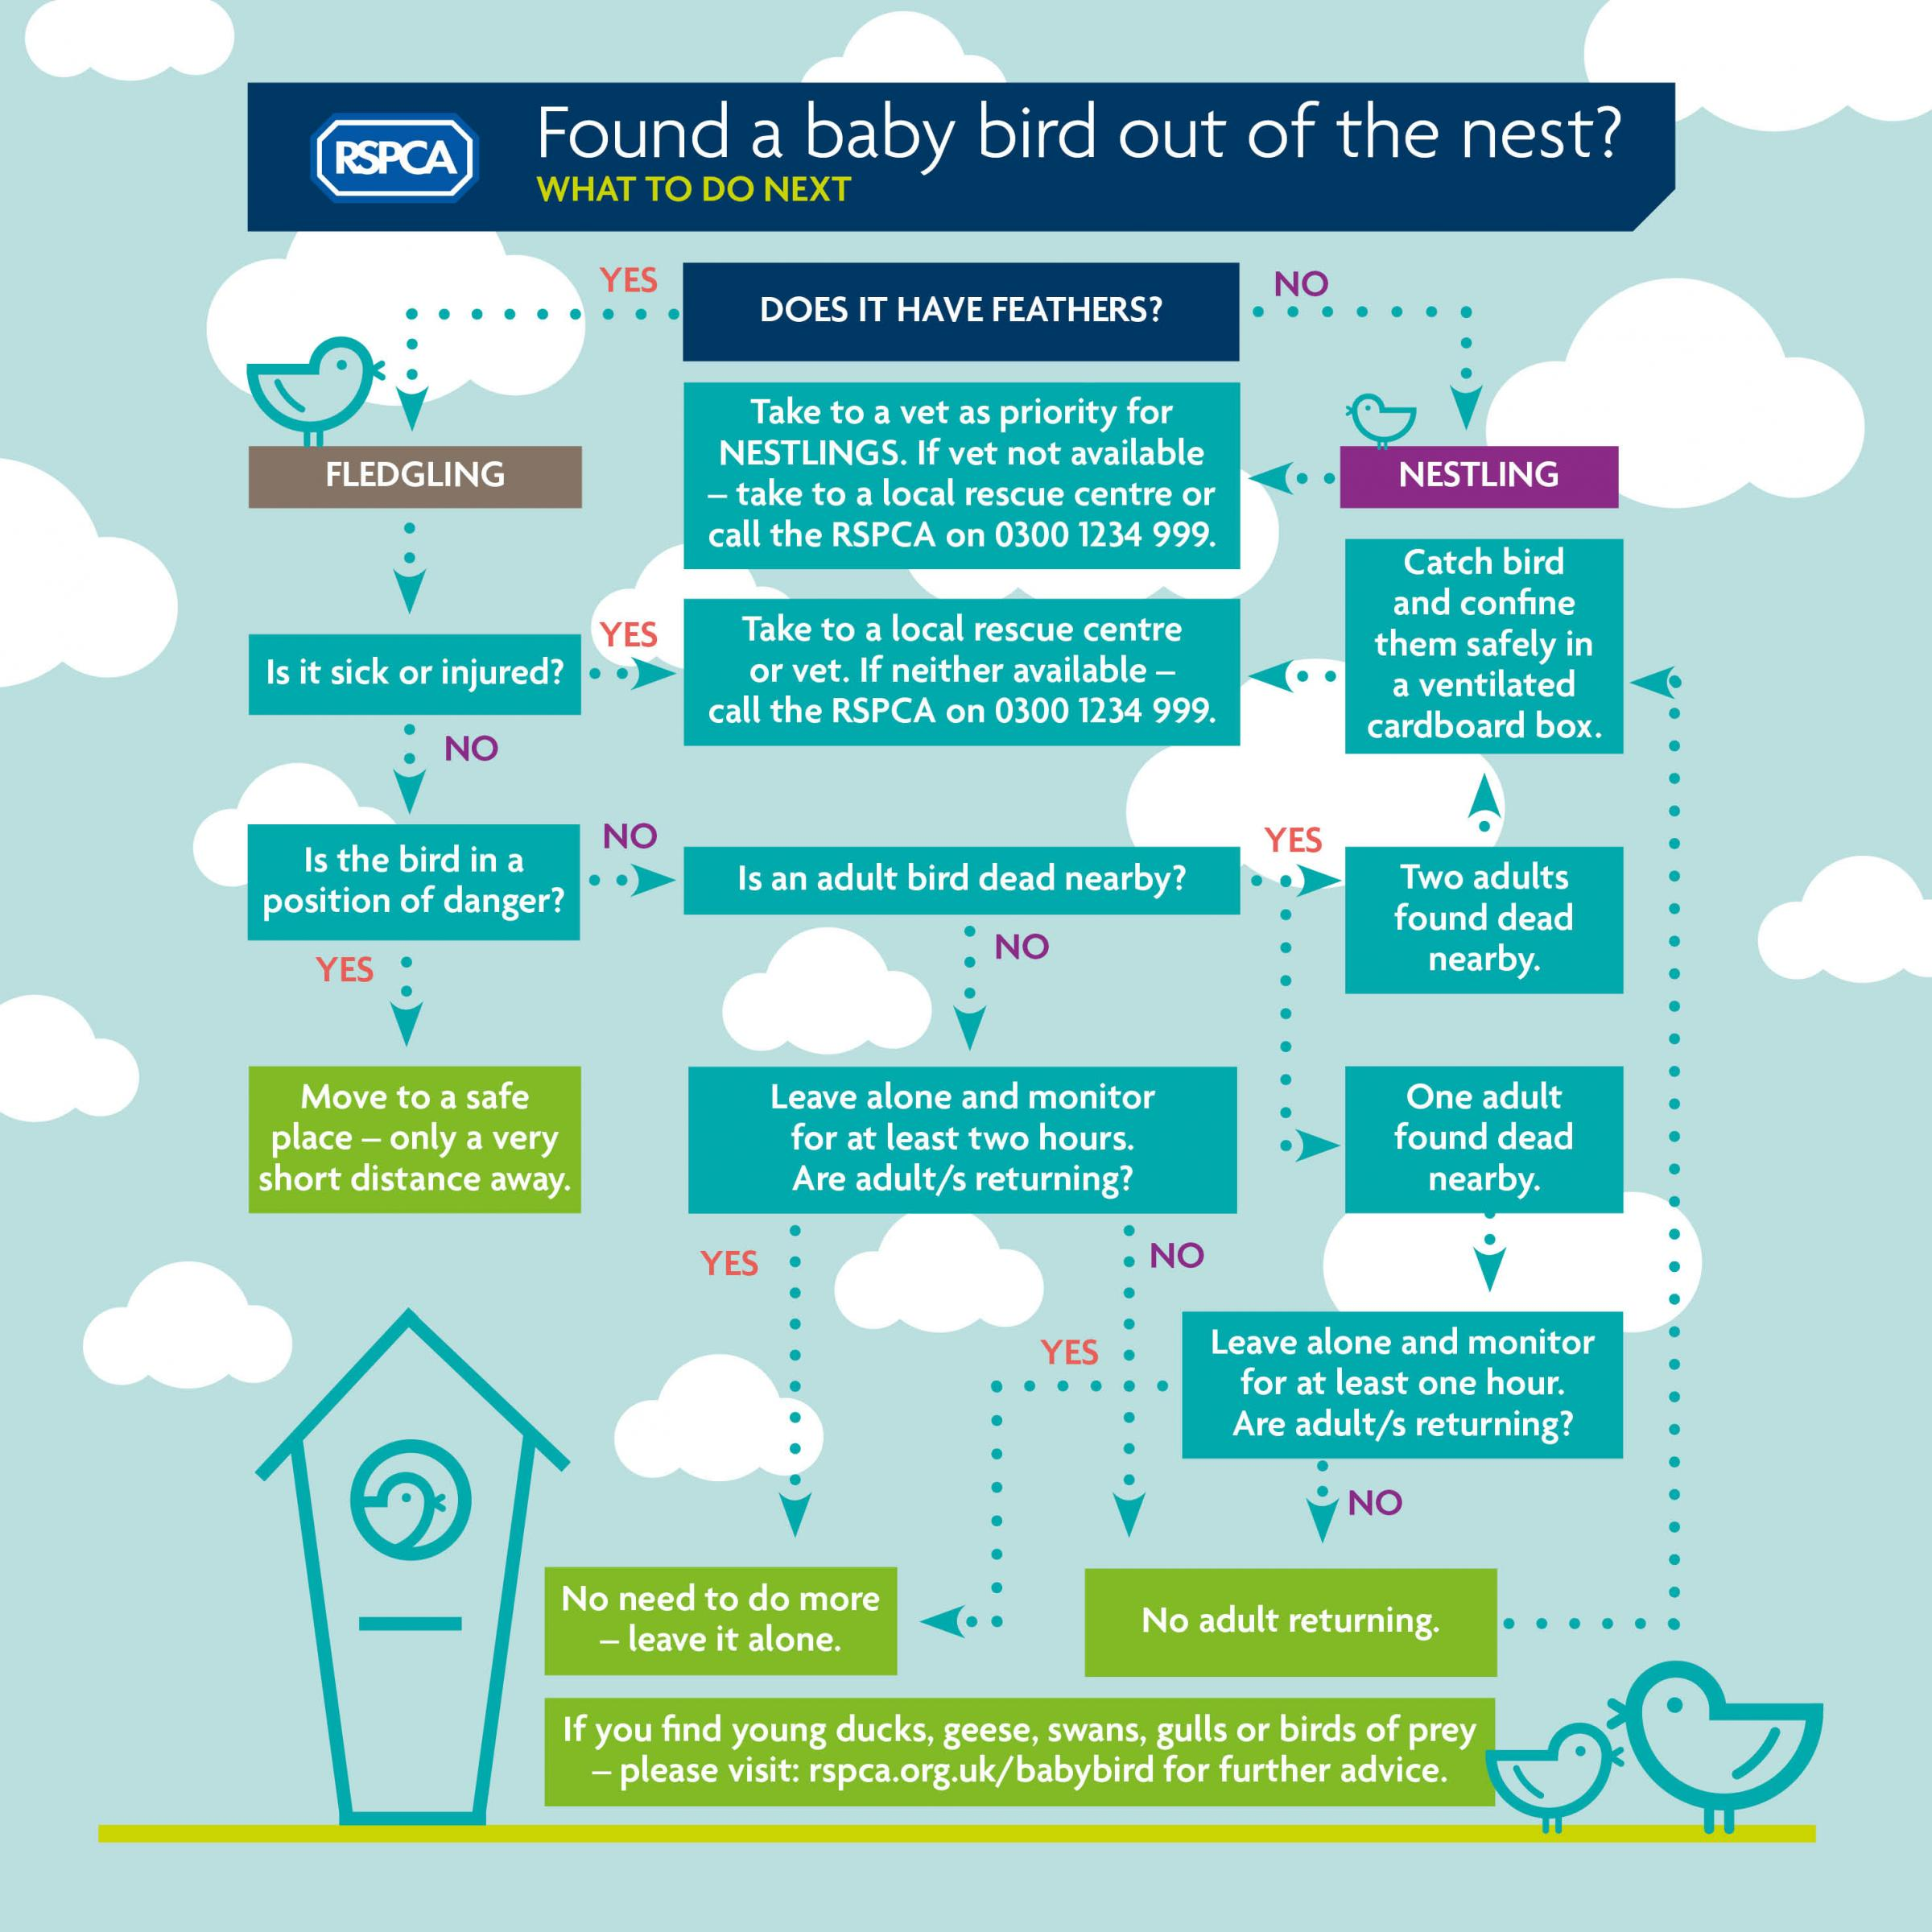 The RSPCA has produced a step-by-step guide to helping baby birds